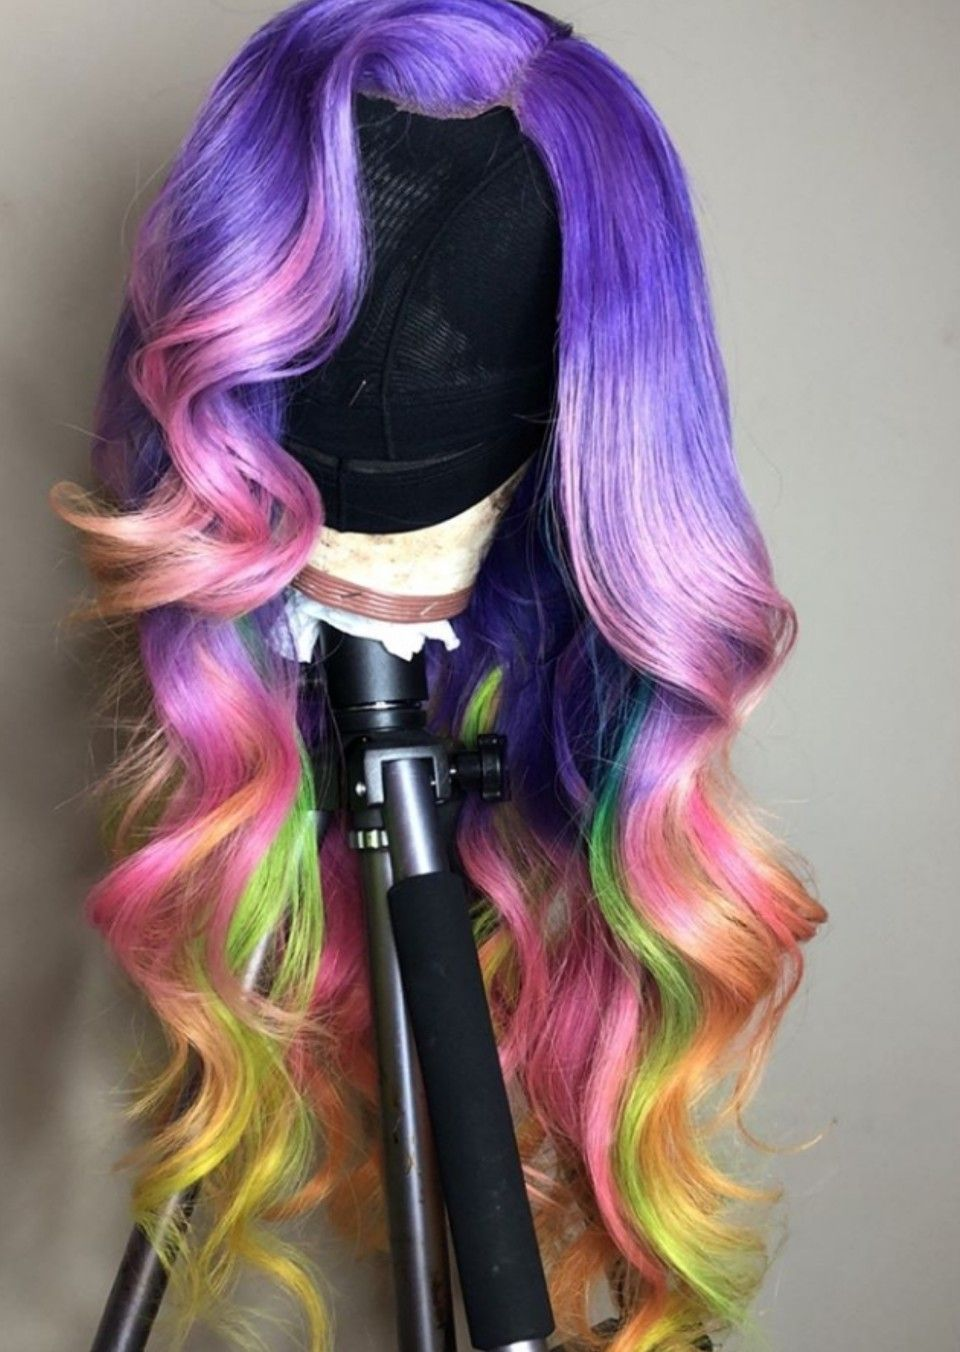 Pin By Ni On Hair Styles Pinterest Wig Weave Hairstyles And